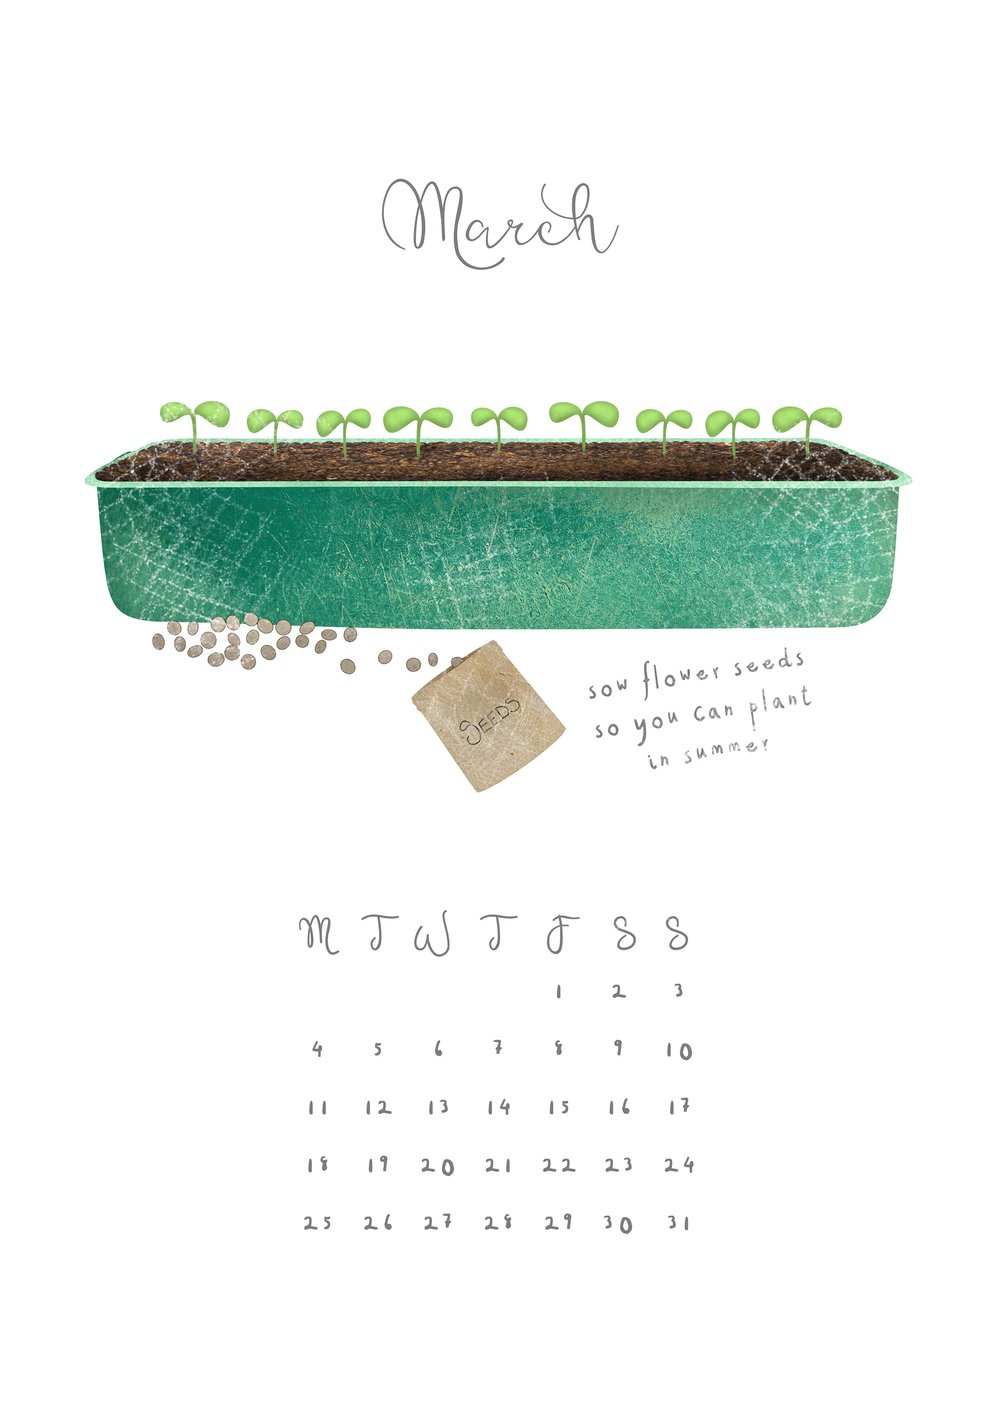 Hannah Weeks Illustration - March - Sow Seeds - A4.jpg